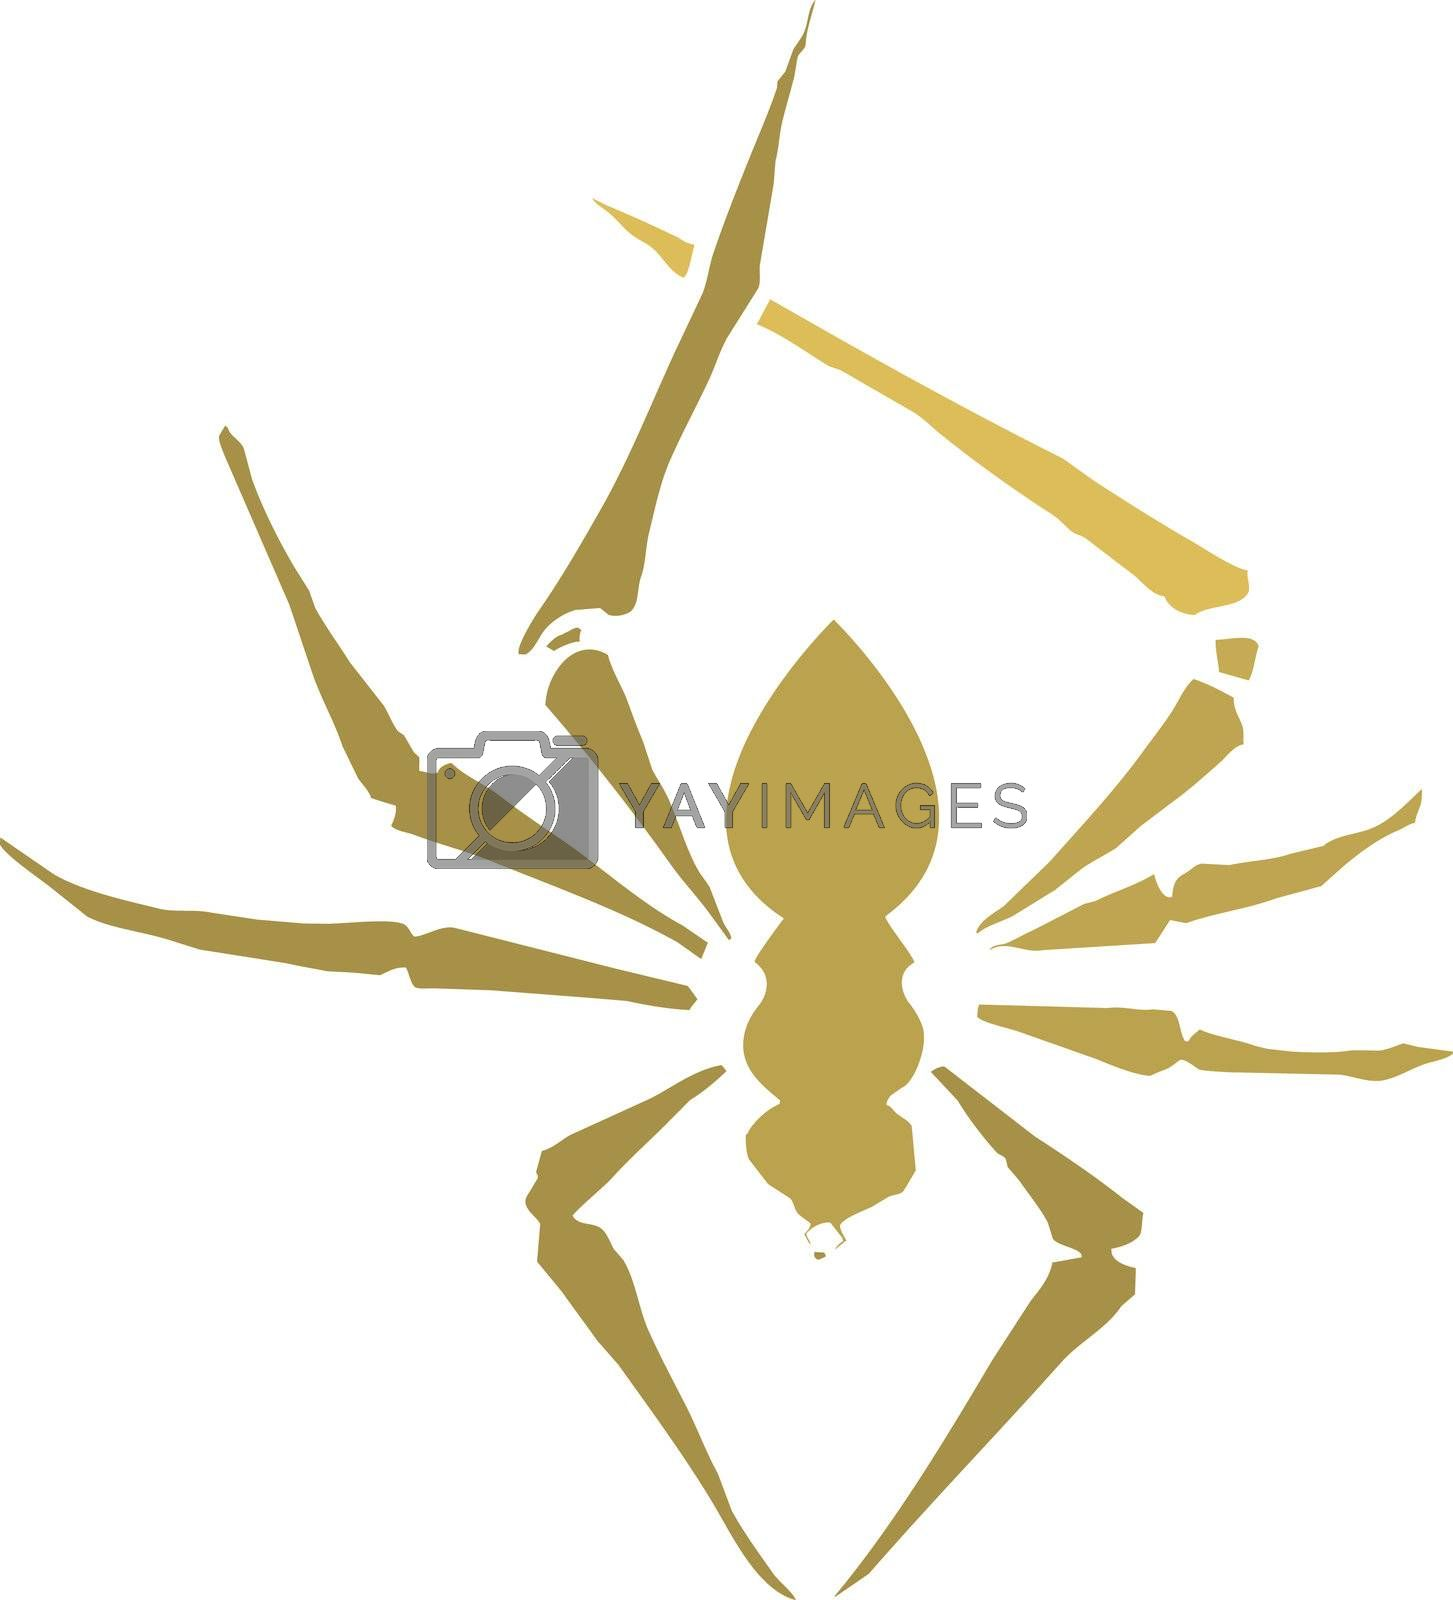 Small spider in Silhouette in orange and brown.